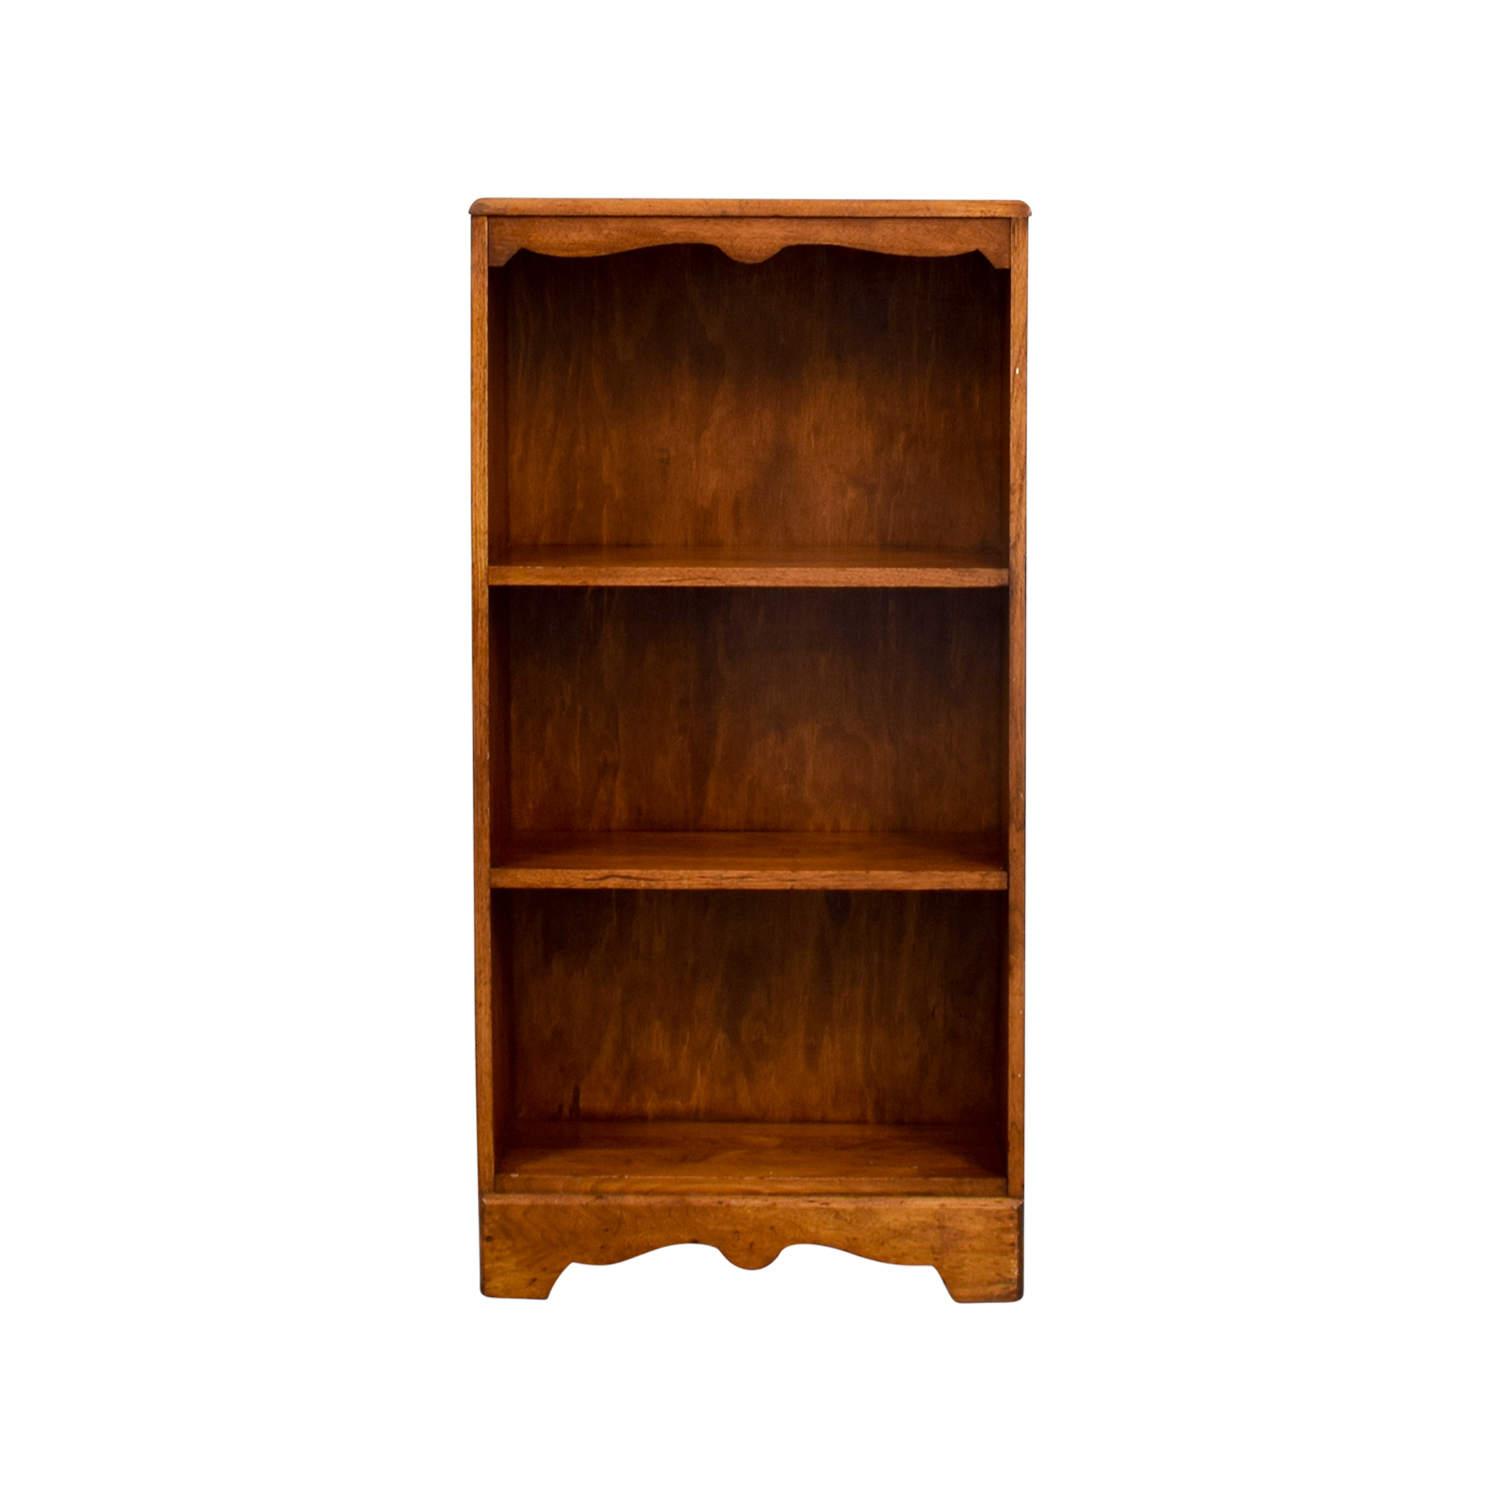 shop Dovetailed Wood Standing Bookshelf online